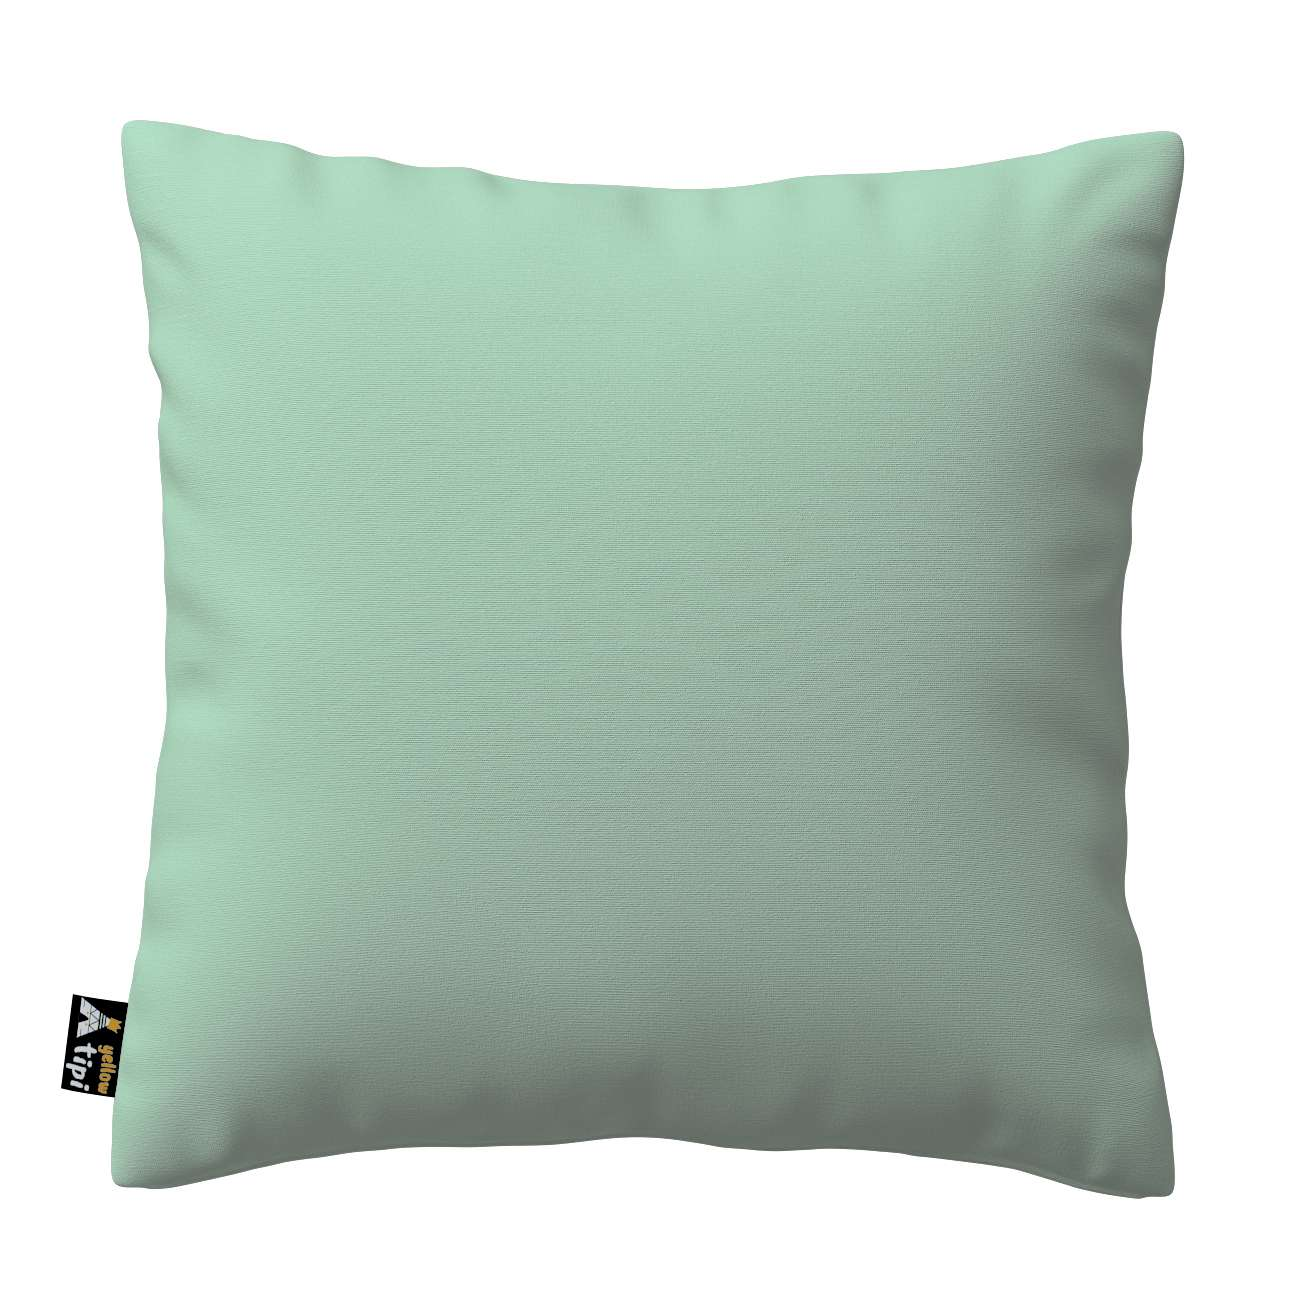 Milly cushion cover in collection Happiness, fabric: 133-61